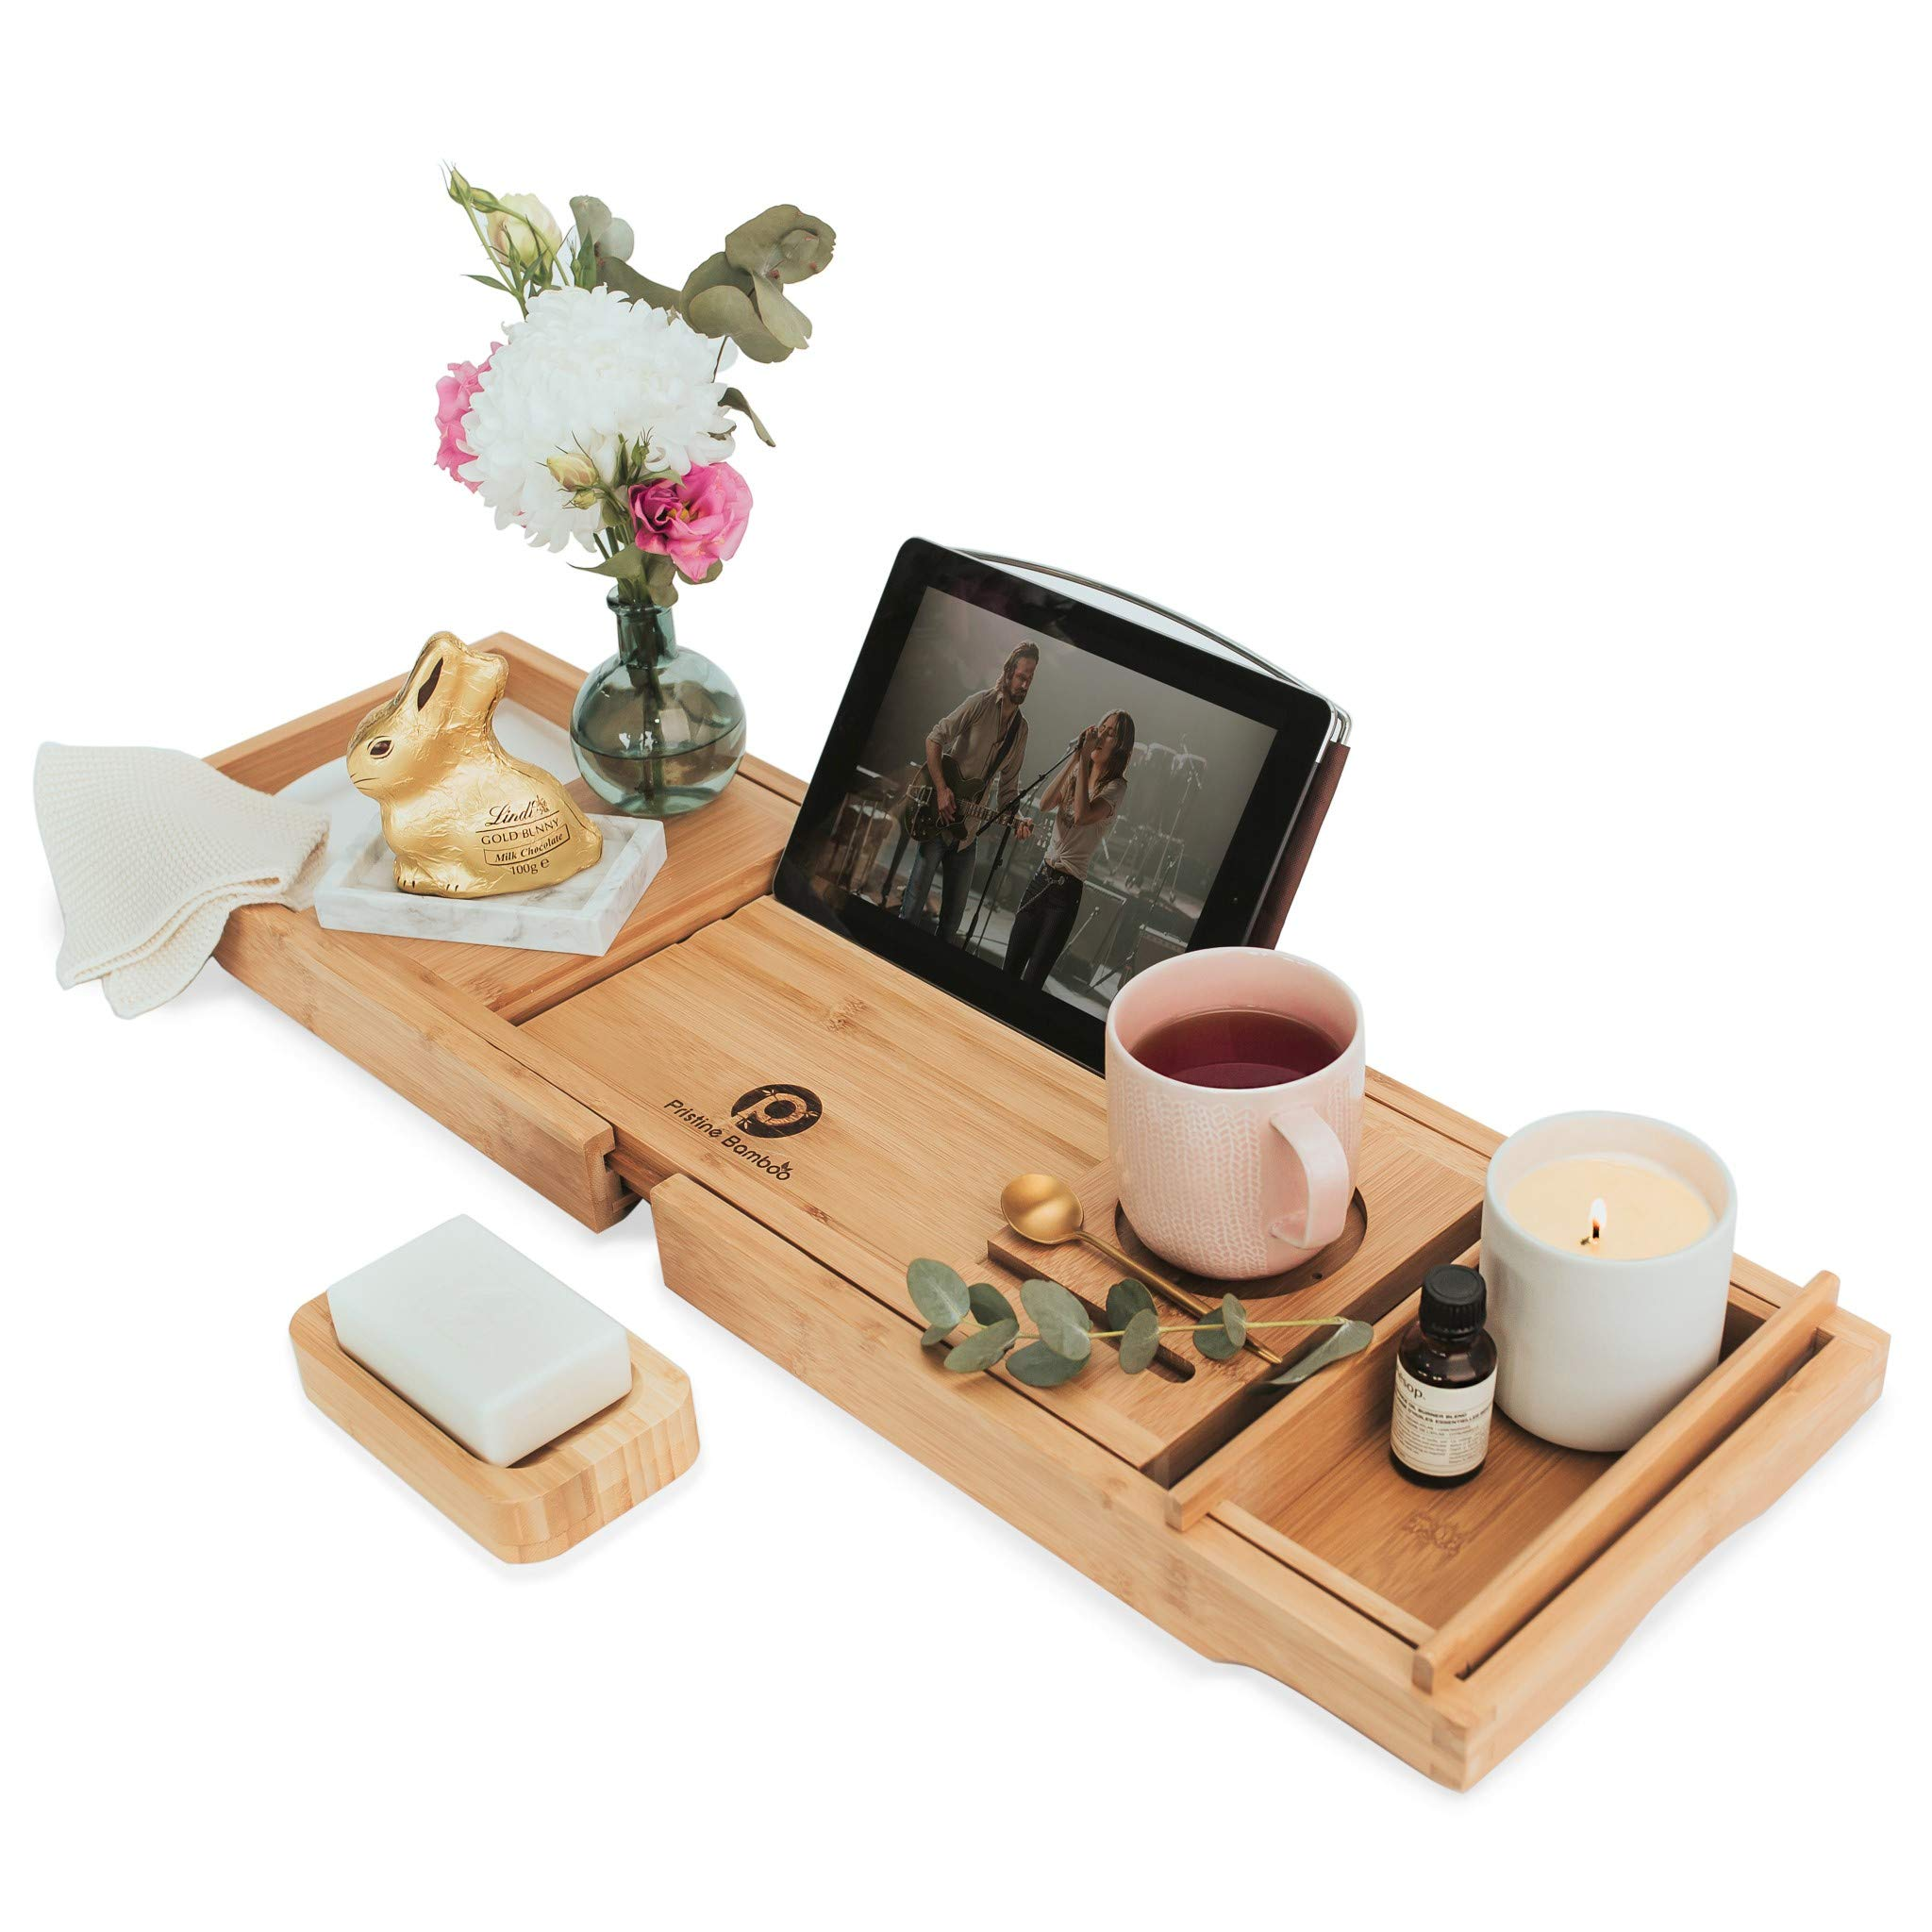 PRISTINE BAMBOO Bathtub Caddy – Eco-friendly, Waterproof, Book, Wine, iPad Holder – Expandable Wood Tray For Bath – For Uninterrupted Relaxing